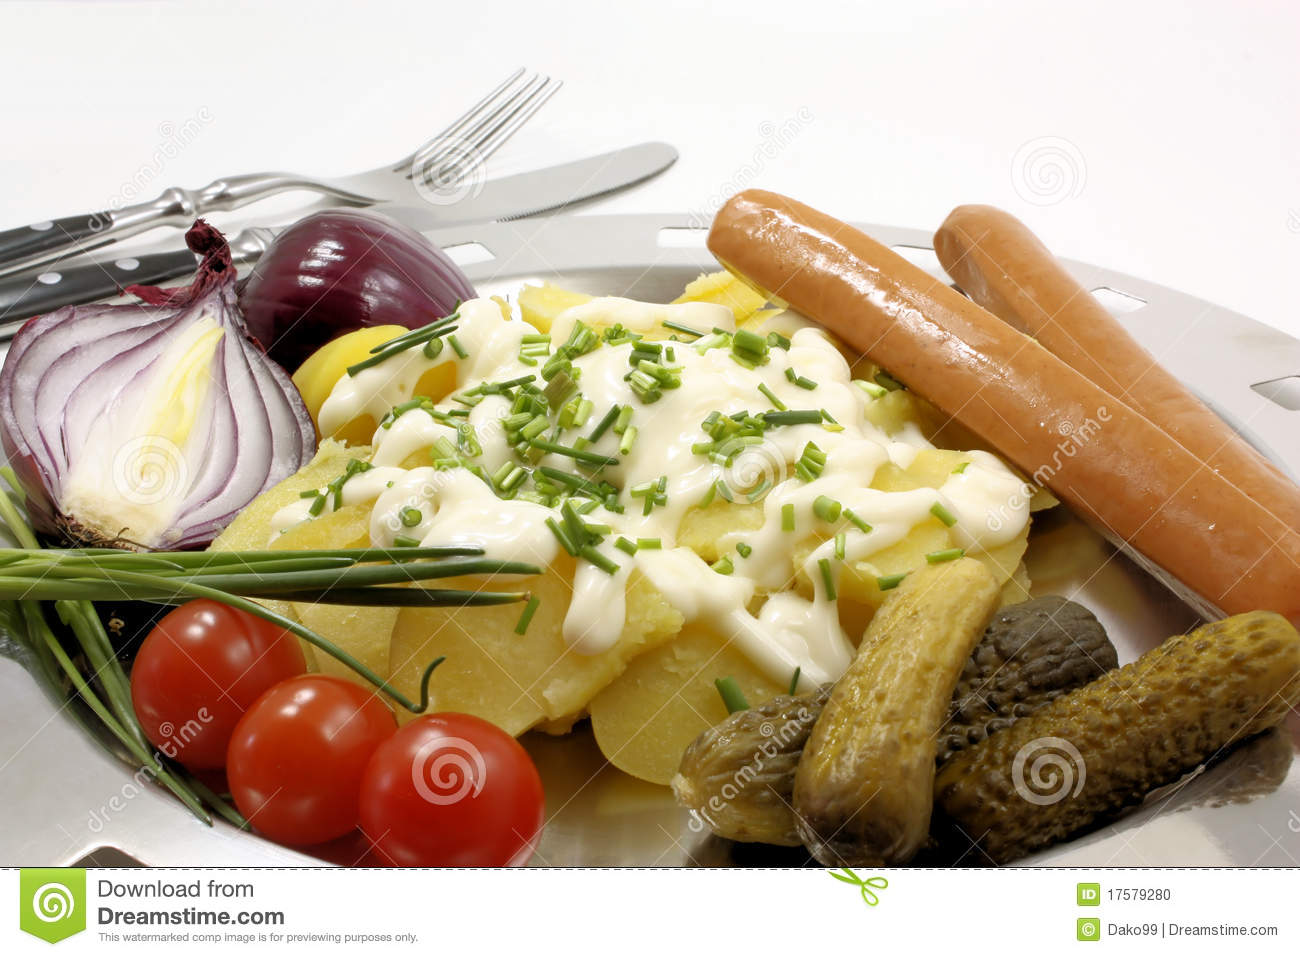 Potato Salad With Sausages Stock Photo - Image: 17579280